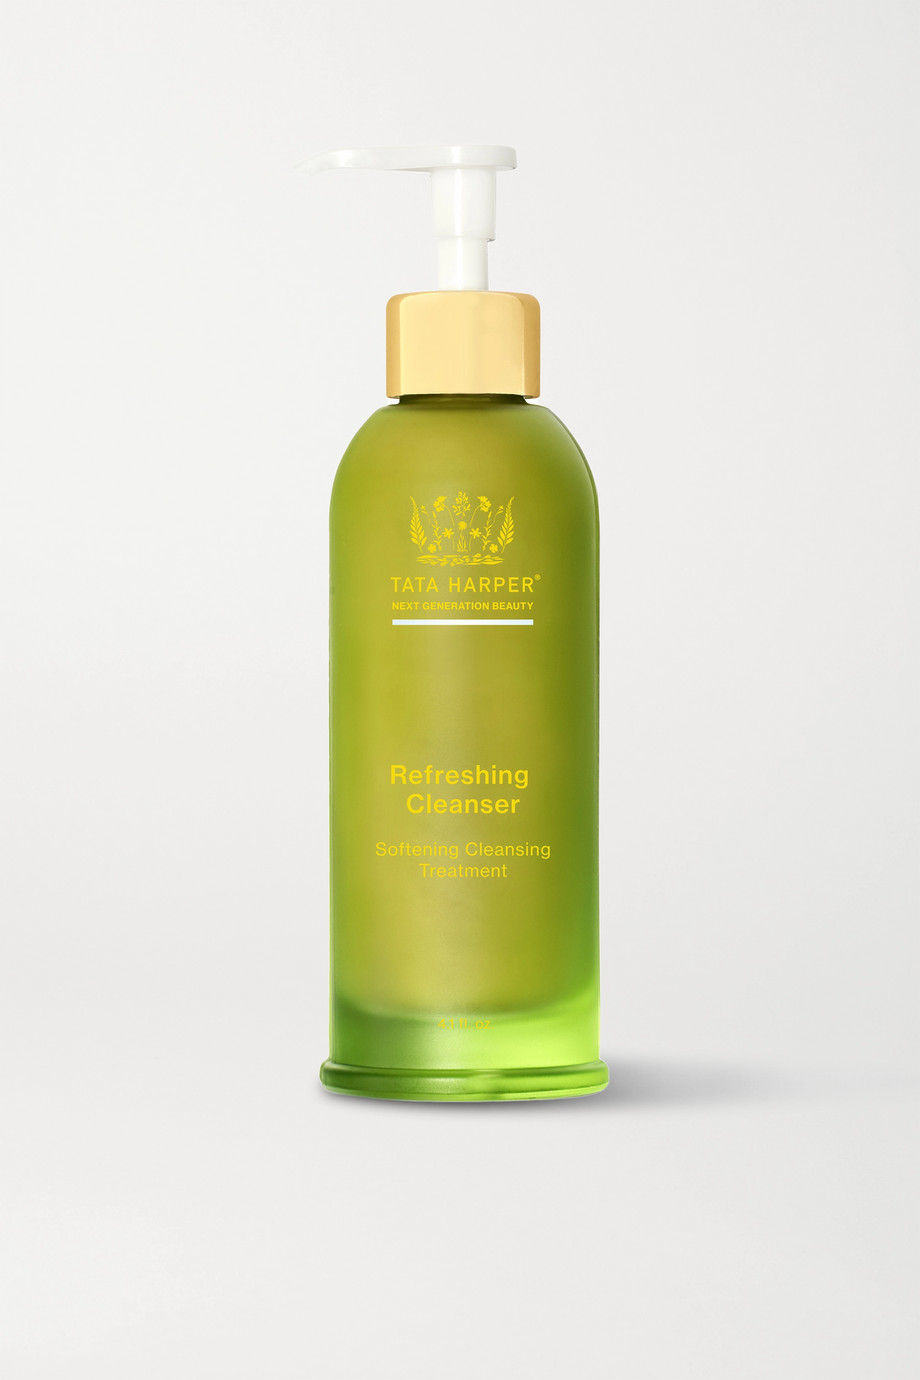 Tata Harper Refreshing Cleanser, 125ml